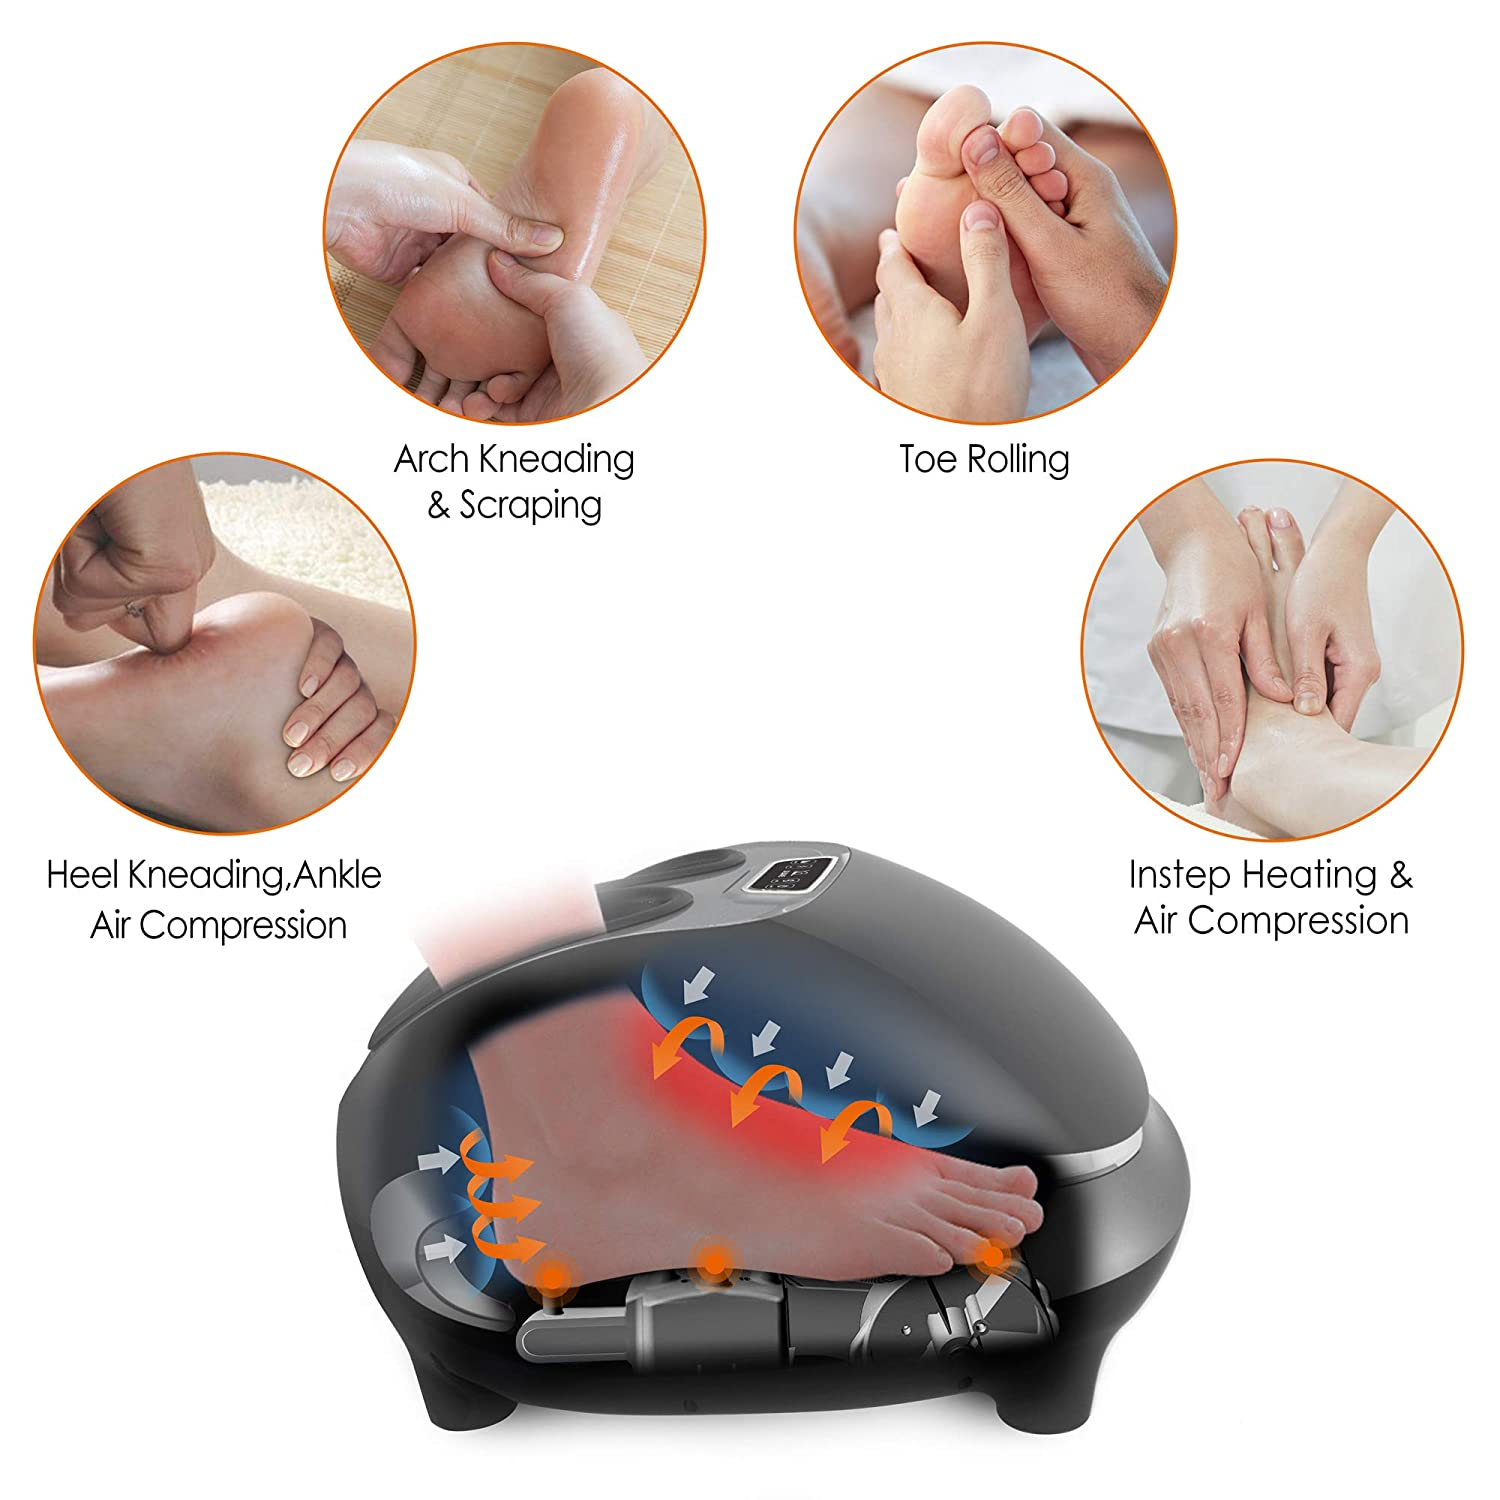 Snailax Shiatsu Foot Massager with Heat – Electric Foot Massage Machine with Air Compression Rolling Kneading Massage and Foot Warmer, Ideal Gifts for Men and Women